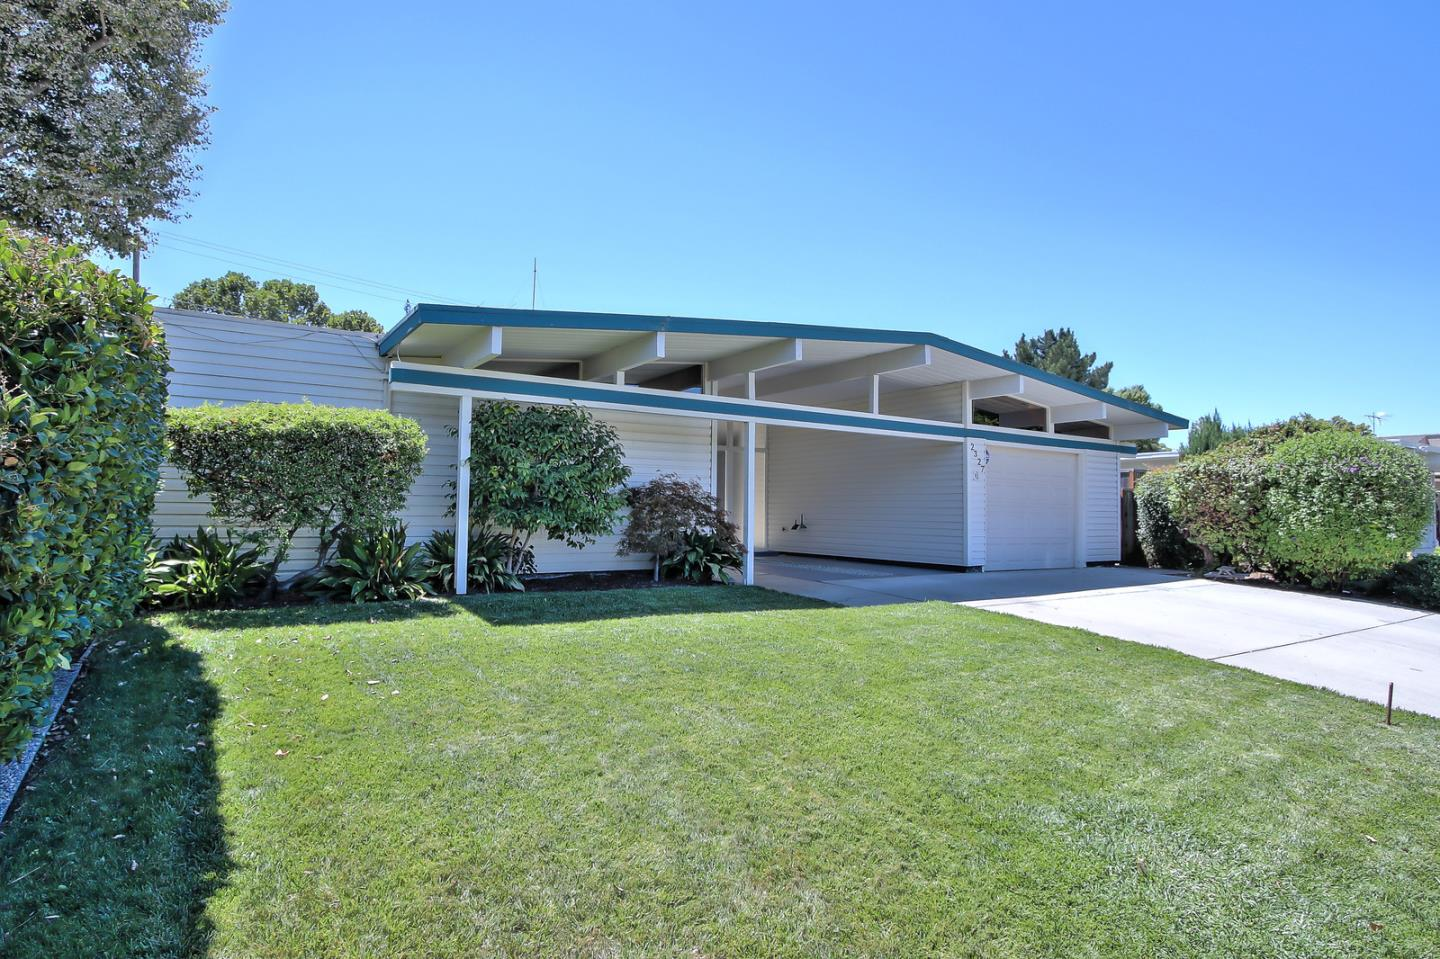 Additional photo for property listing at 2327 Booksin Avenue  San Jose, Californie 95125 États-Unis